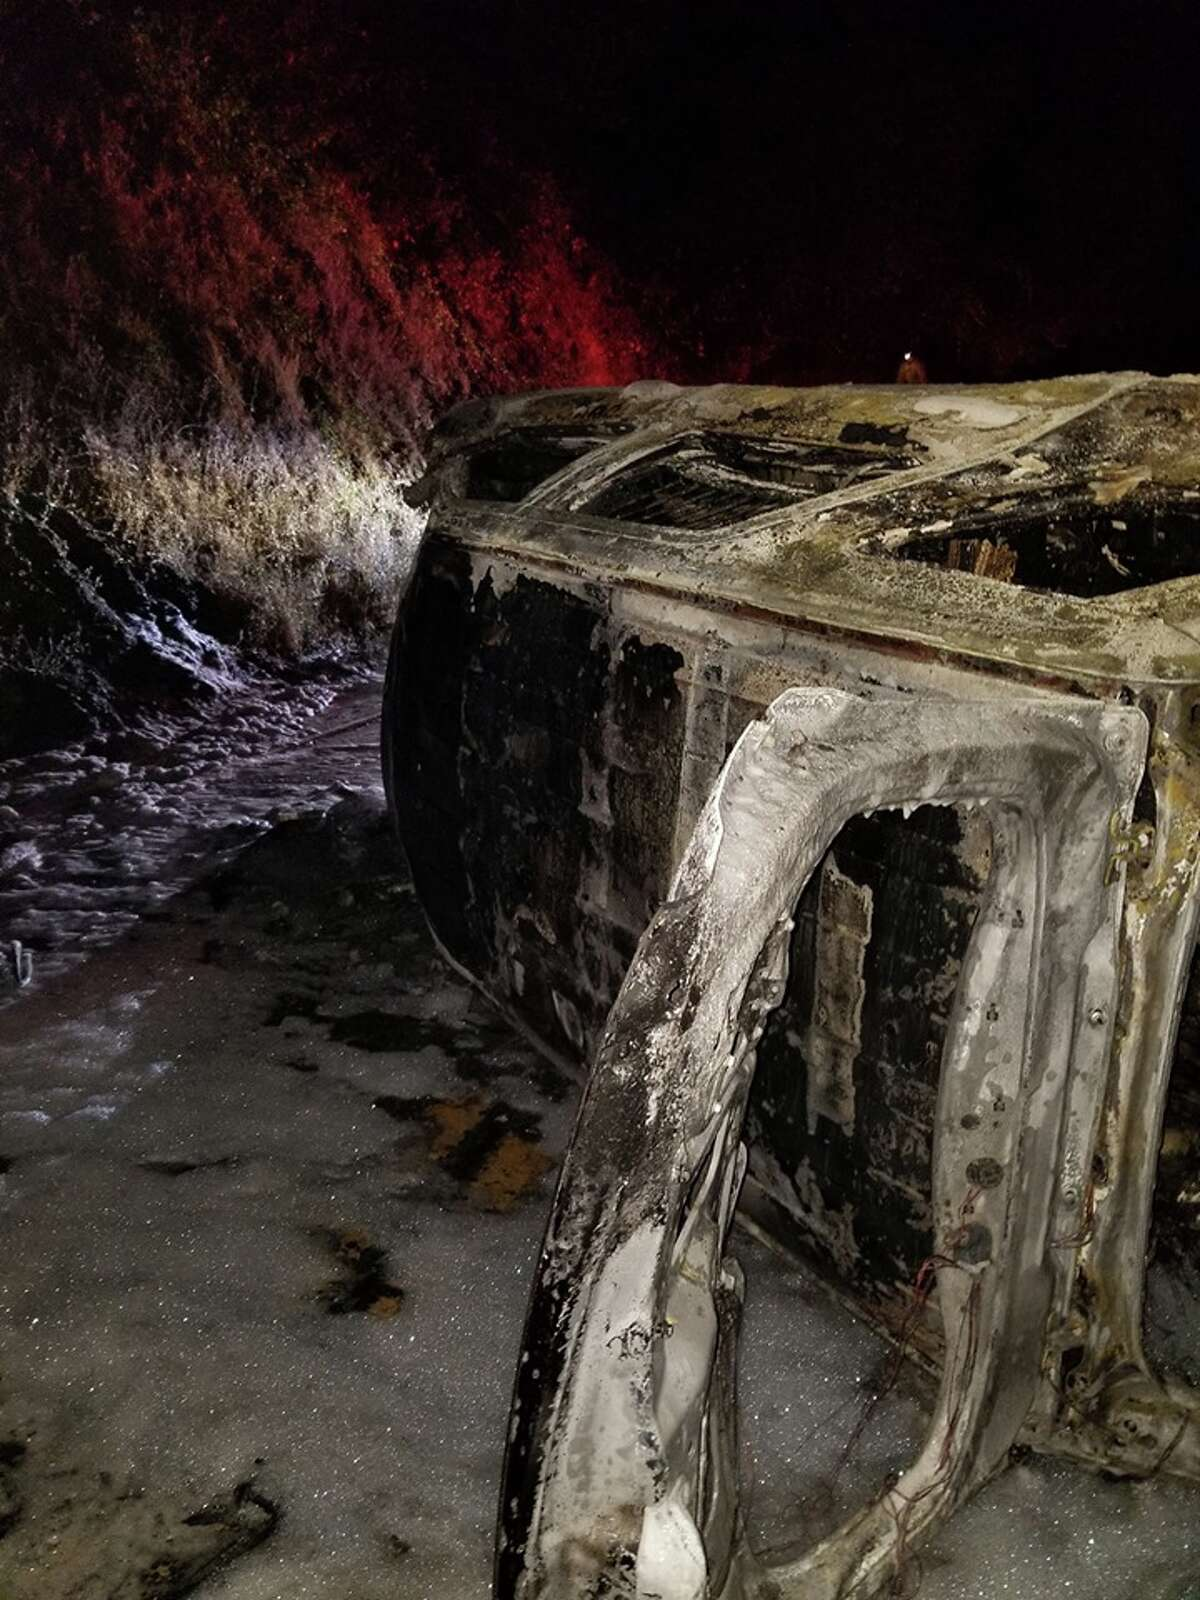 A Humboldt County sheriff's deputy's car is a charred shell after it caught fire Saturday on Highway 96 near Weitchpec. A bear that apparently fell off an embankment and landed on the vehicle is being blamed for the rollover crash.